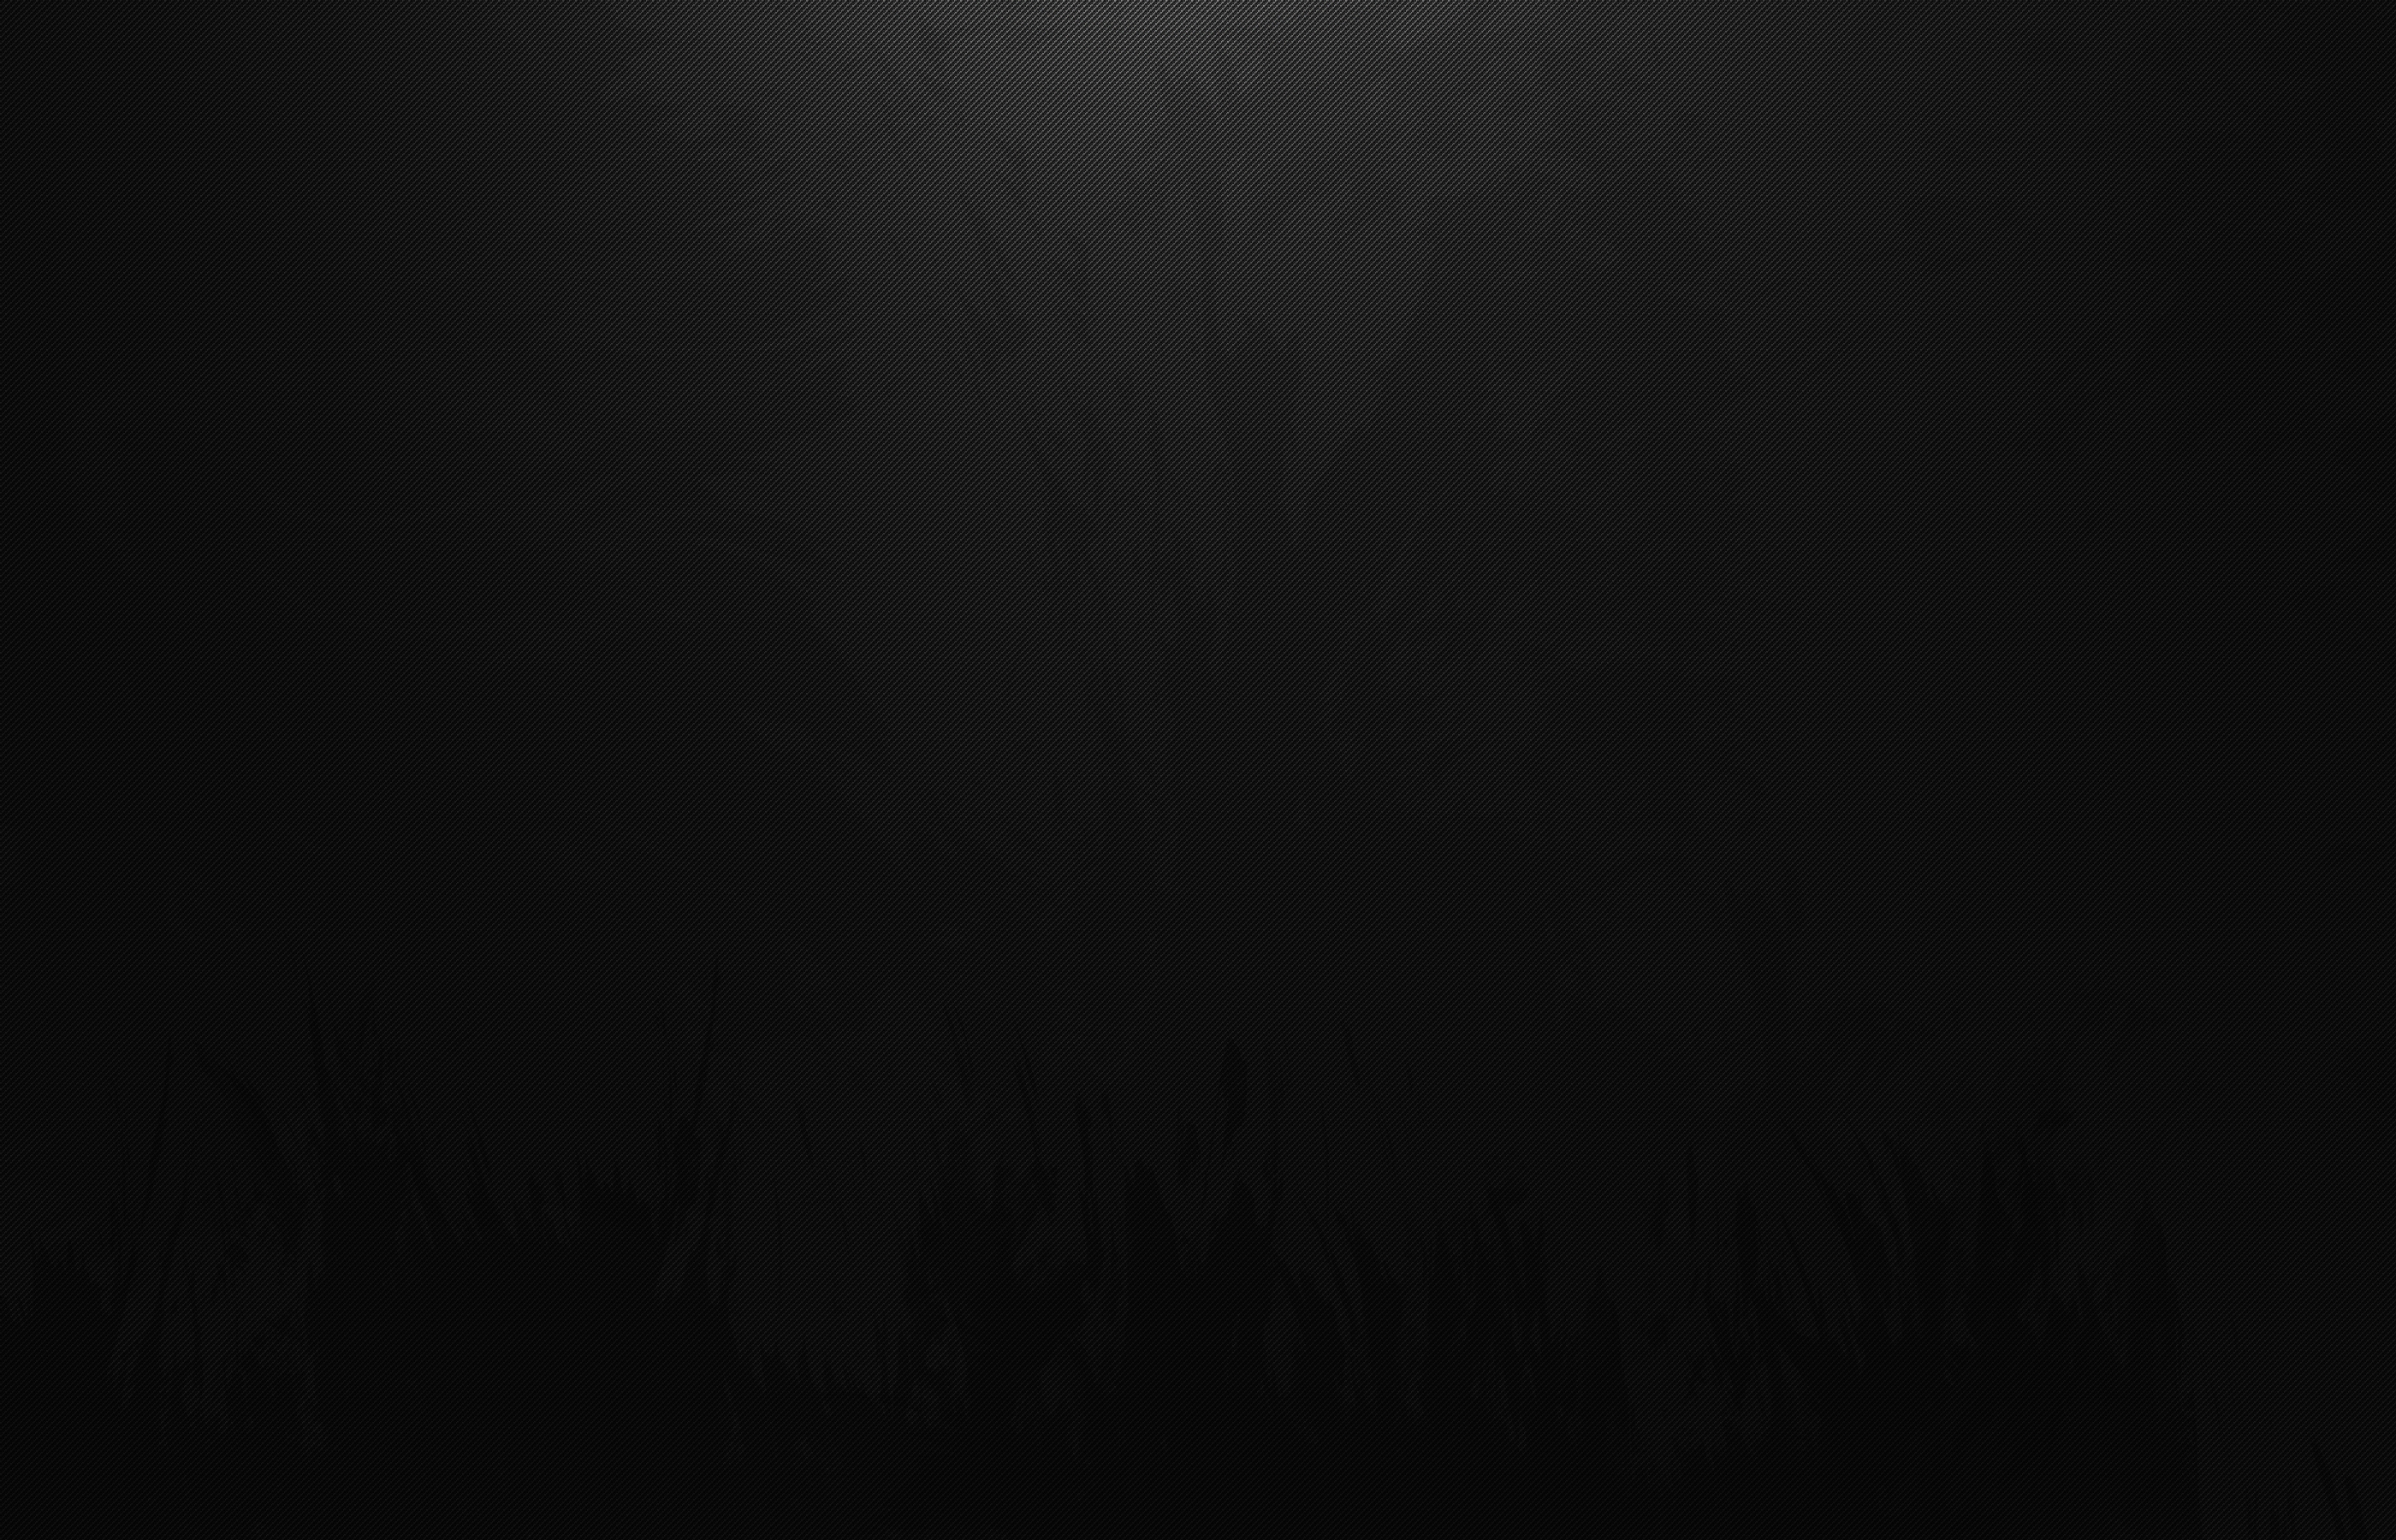 Dark grey pattern wallpaper 2800x1800